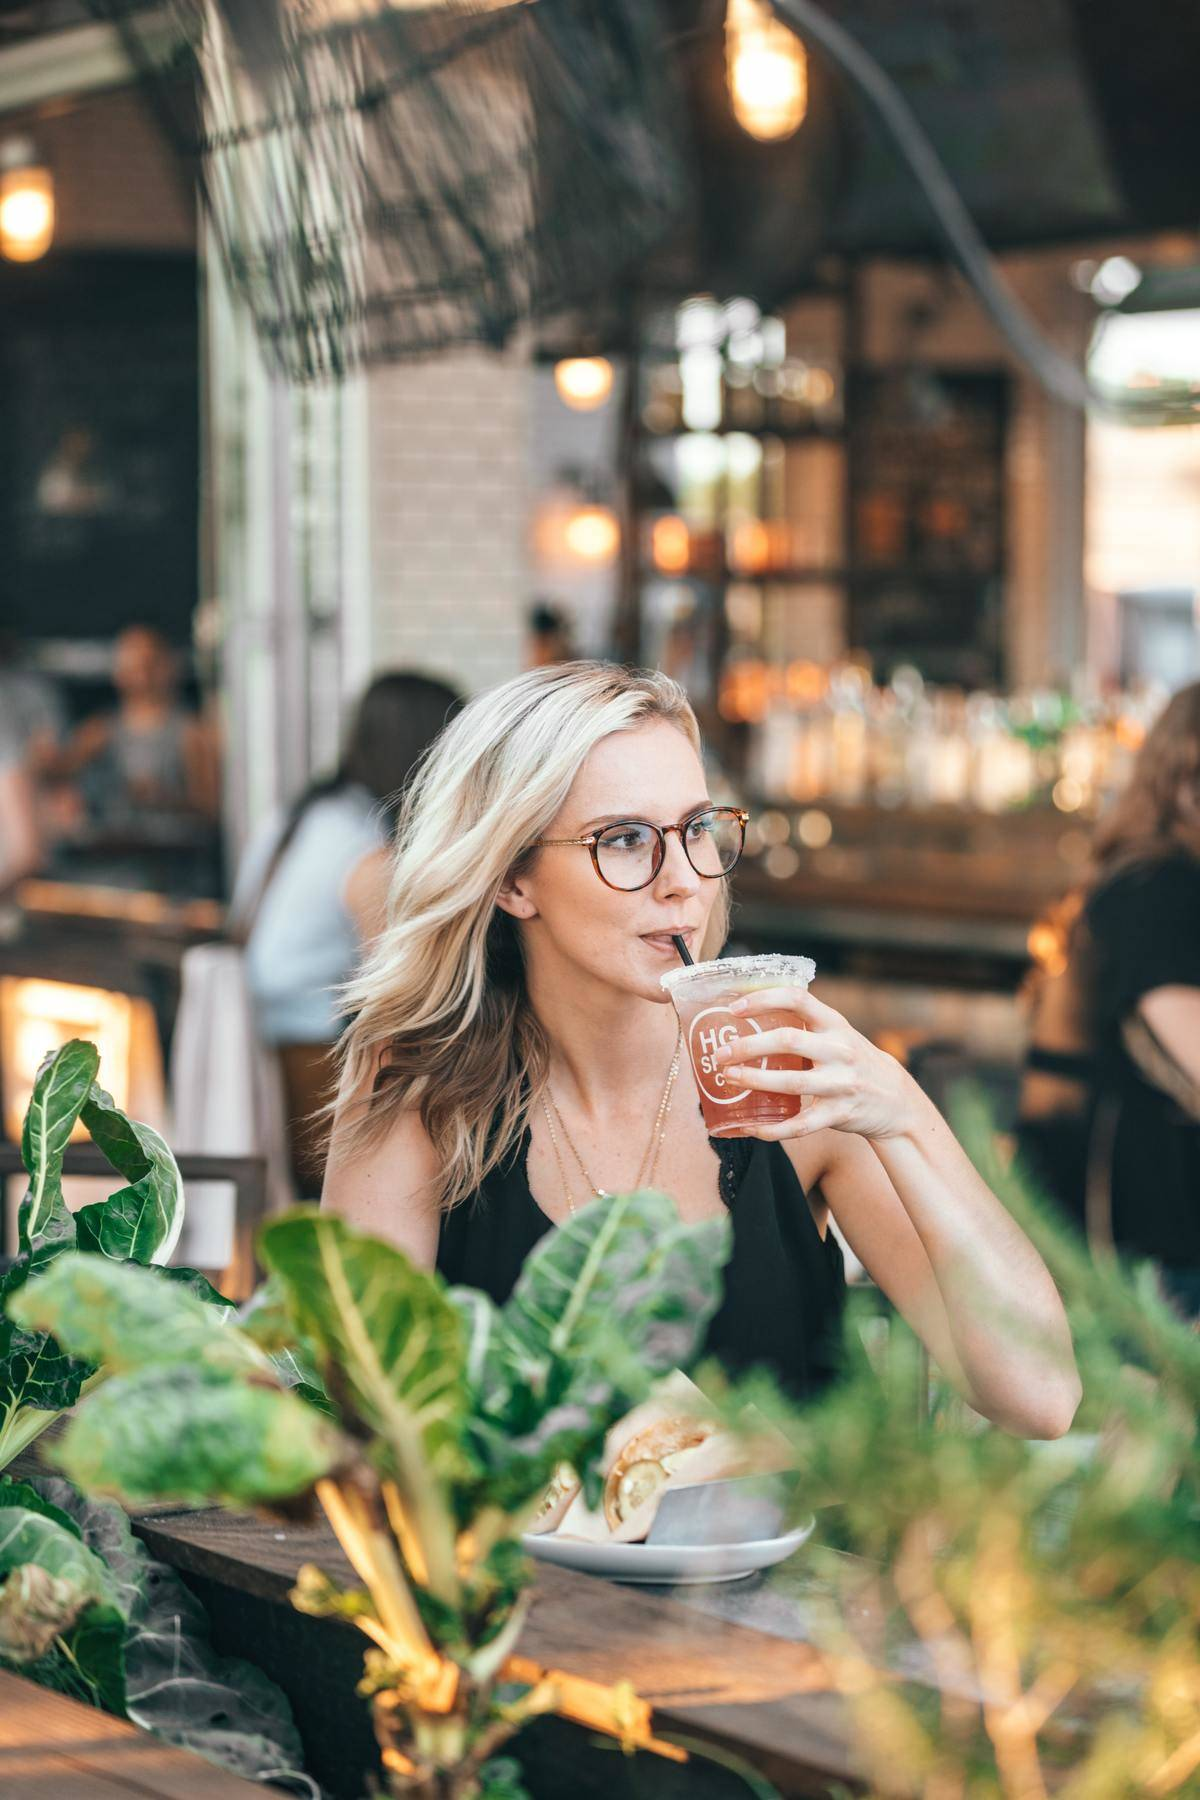 woman drinking iced coffee, staring at something off-camera